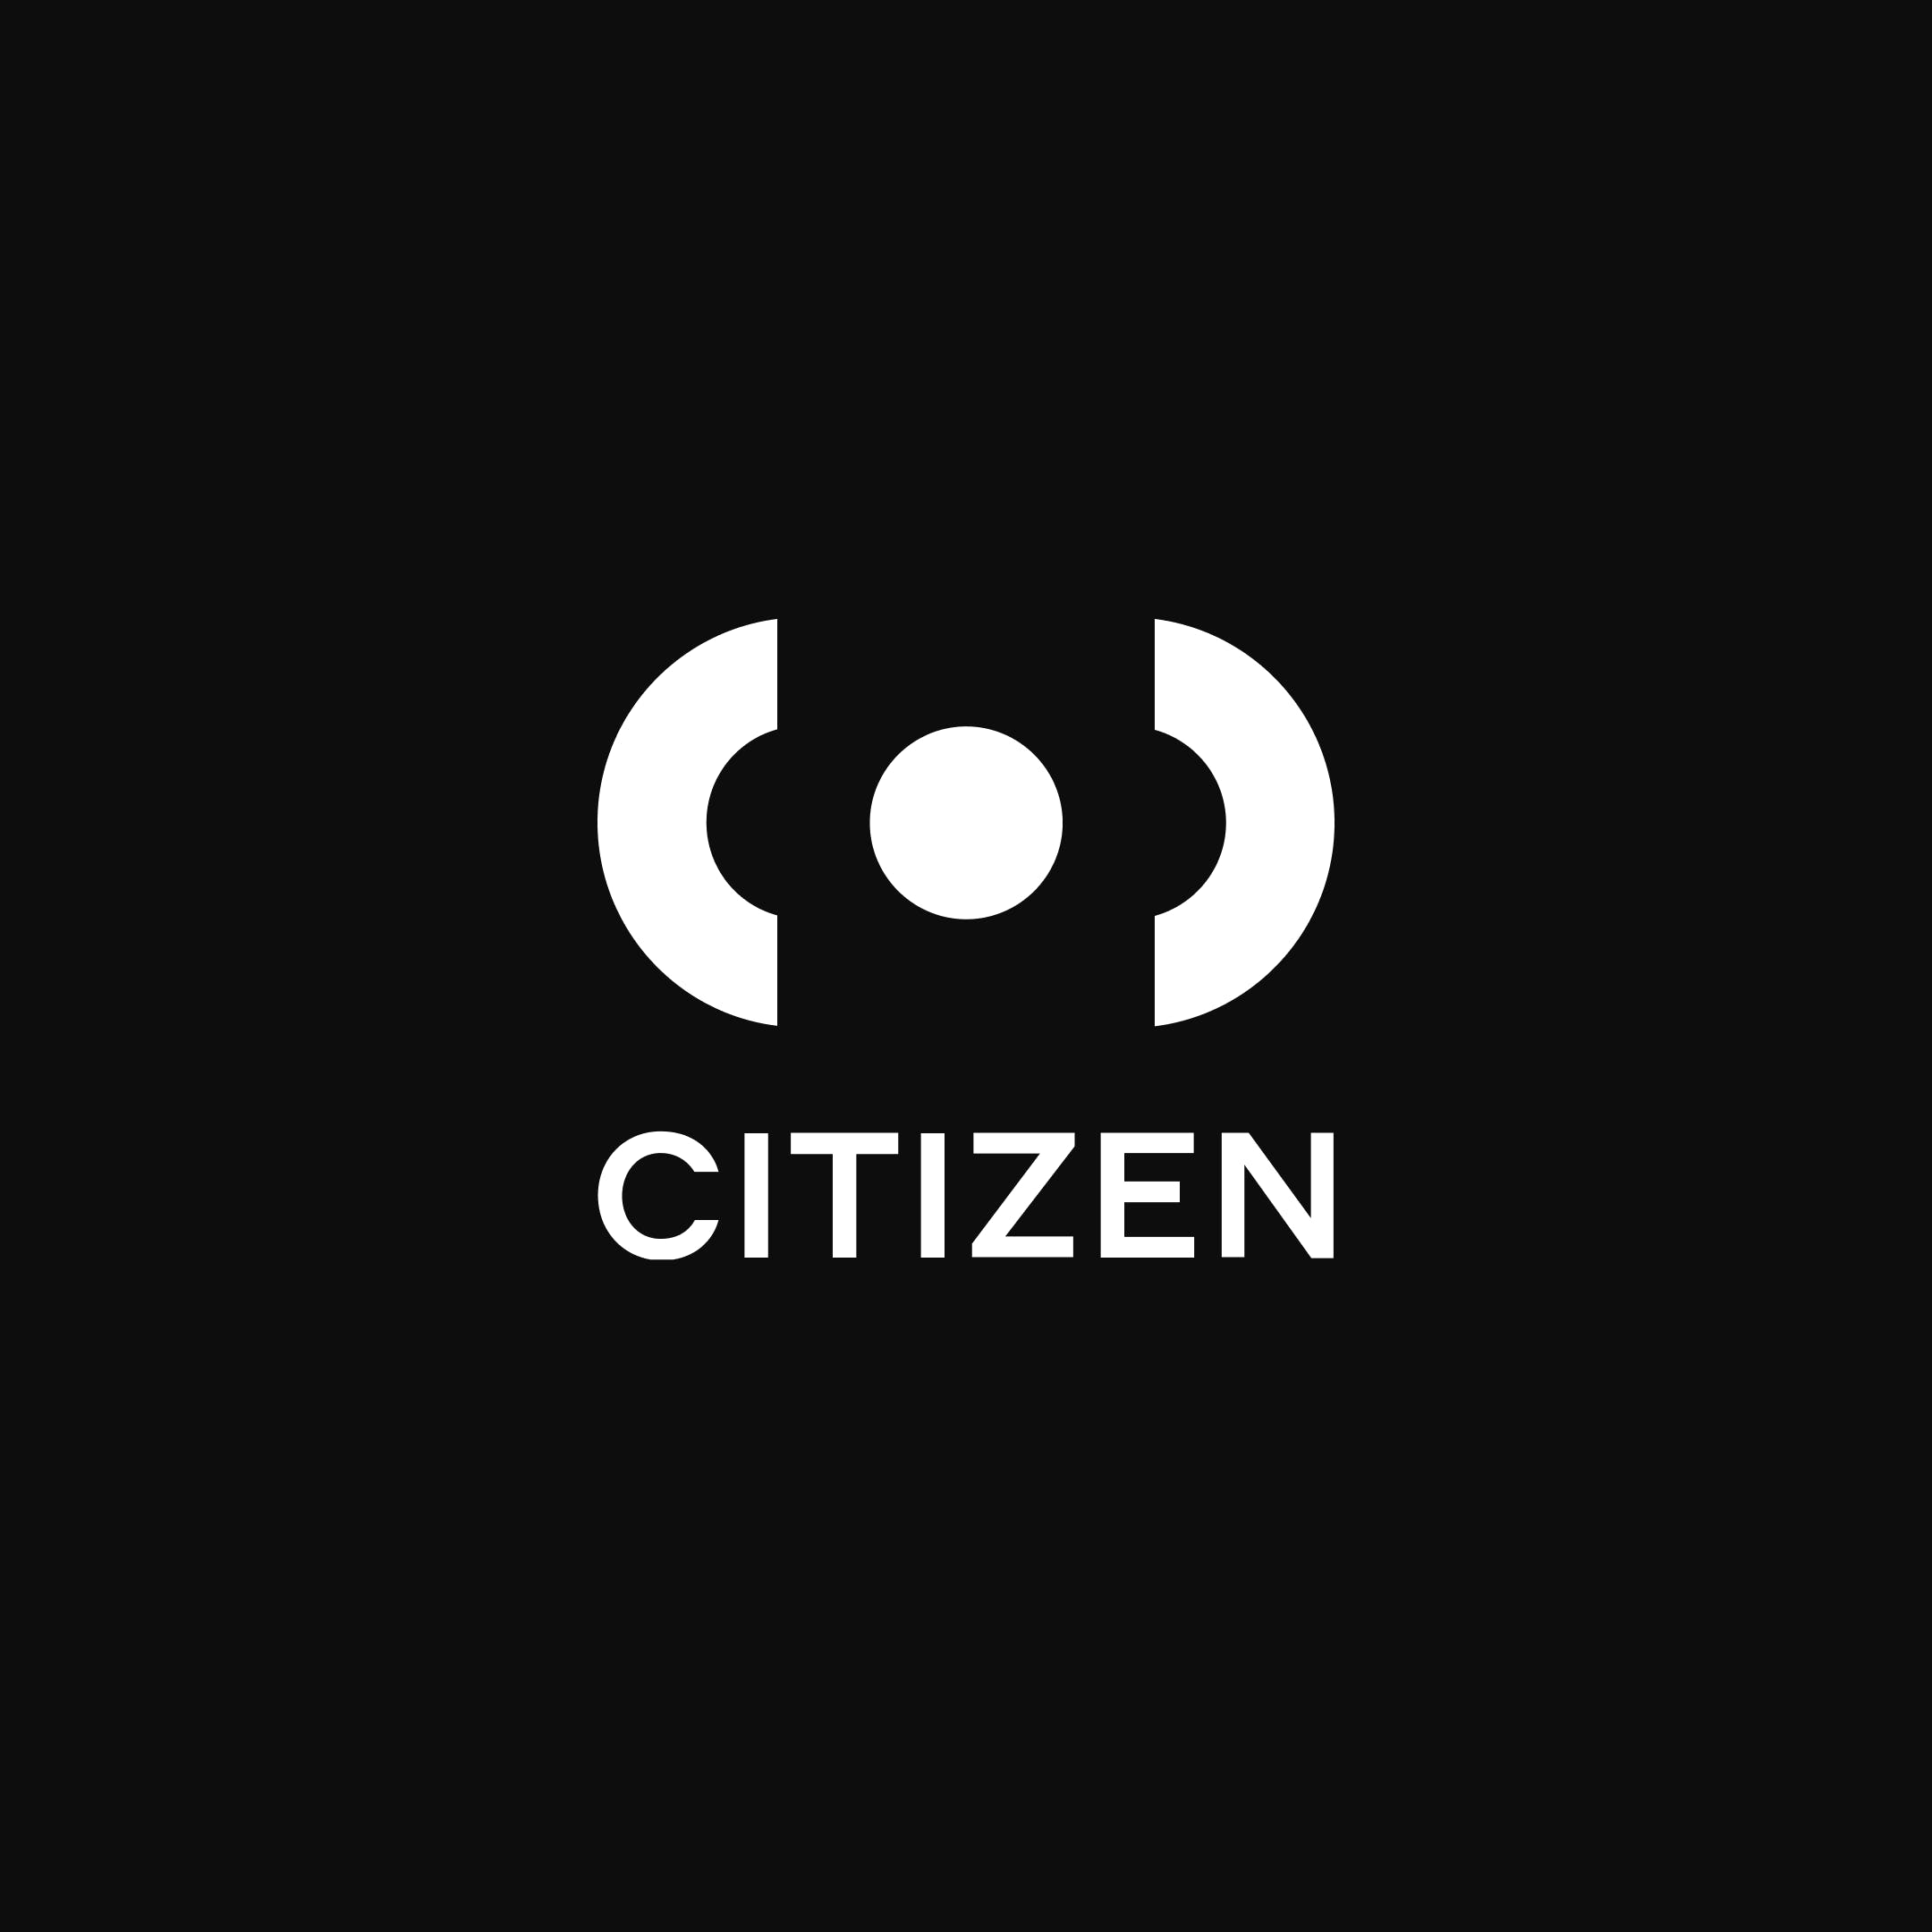 citizen.com